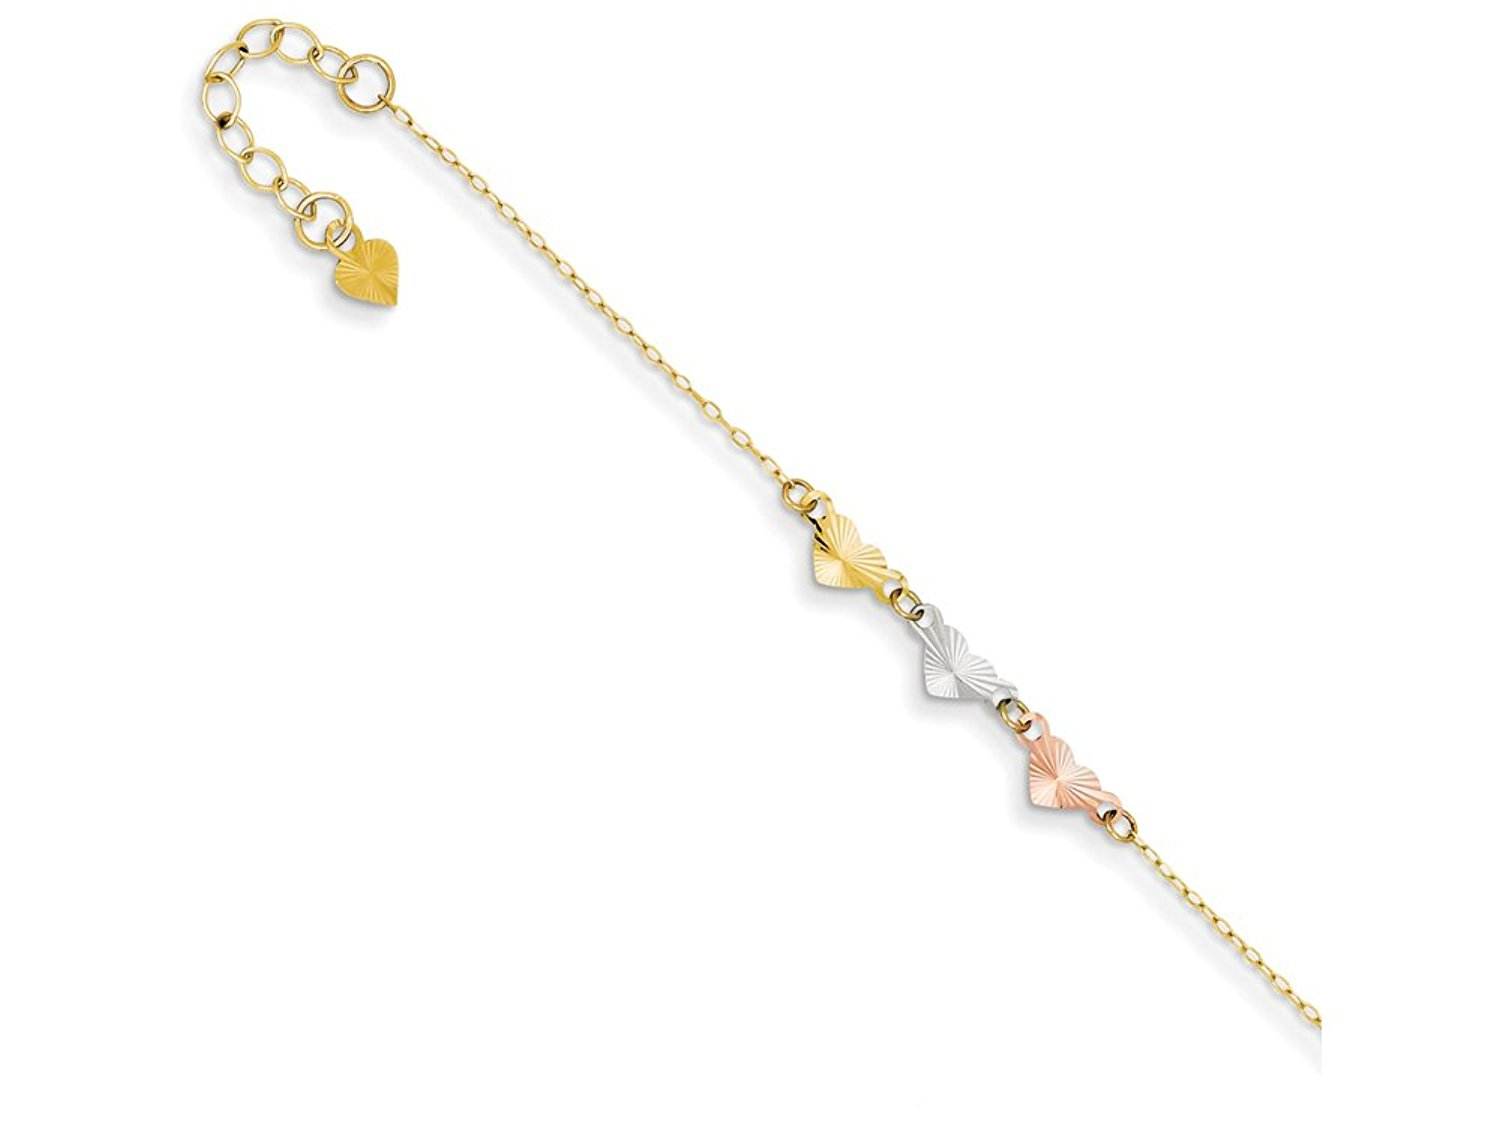 9 Inch 14k Tri-color Adjustable Heart Anklet (Smaller Ankles)